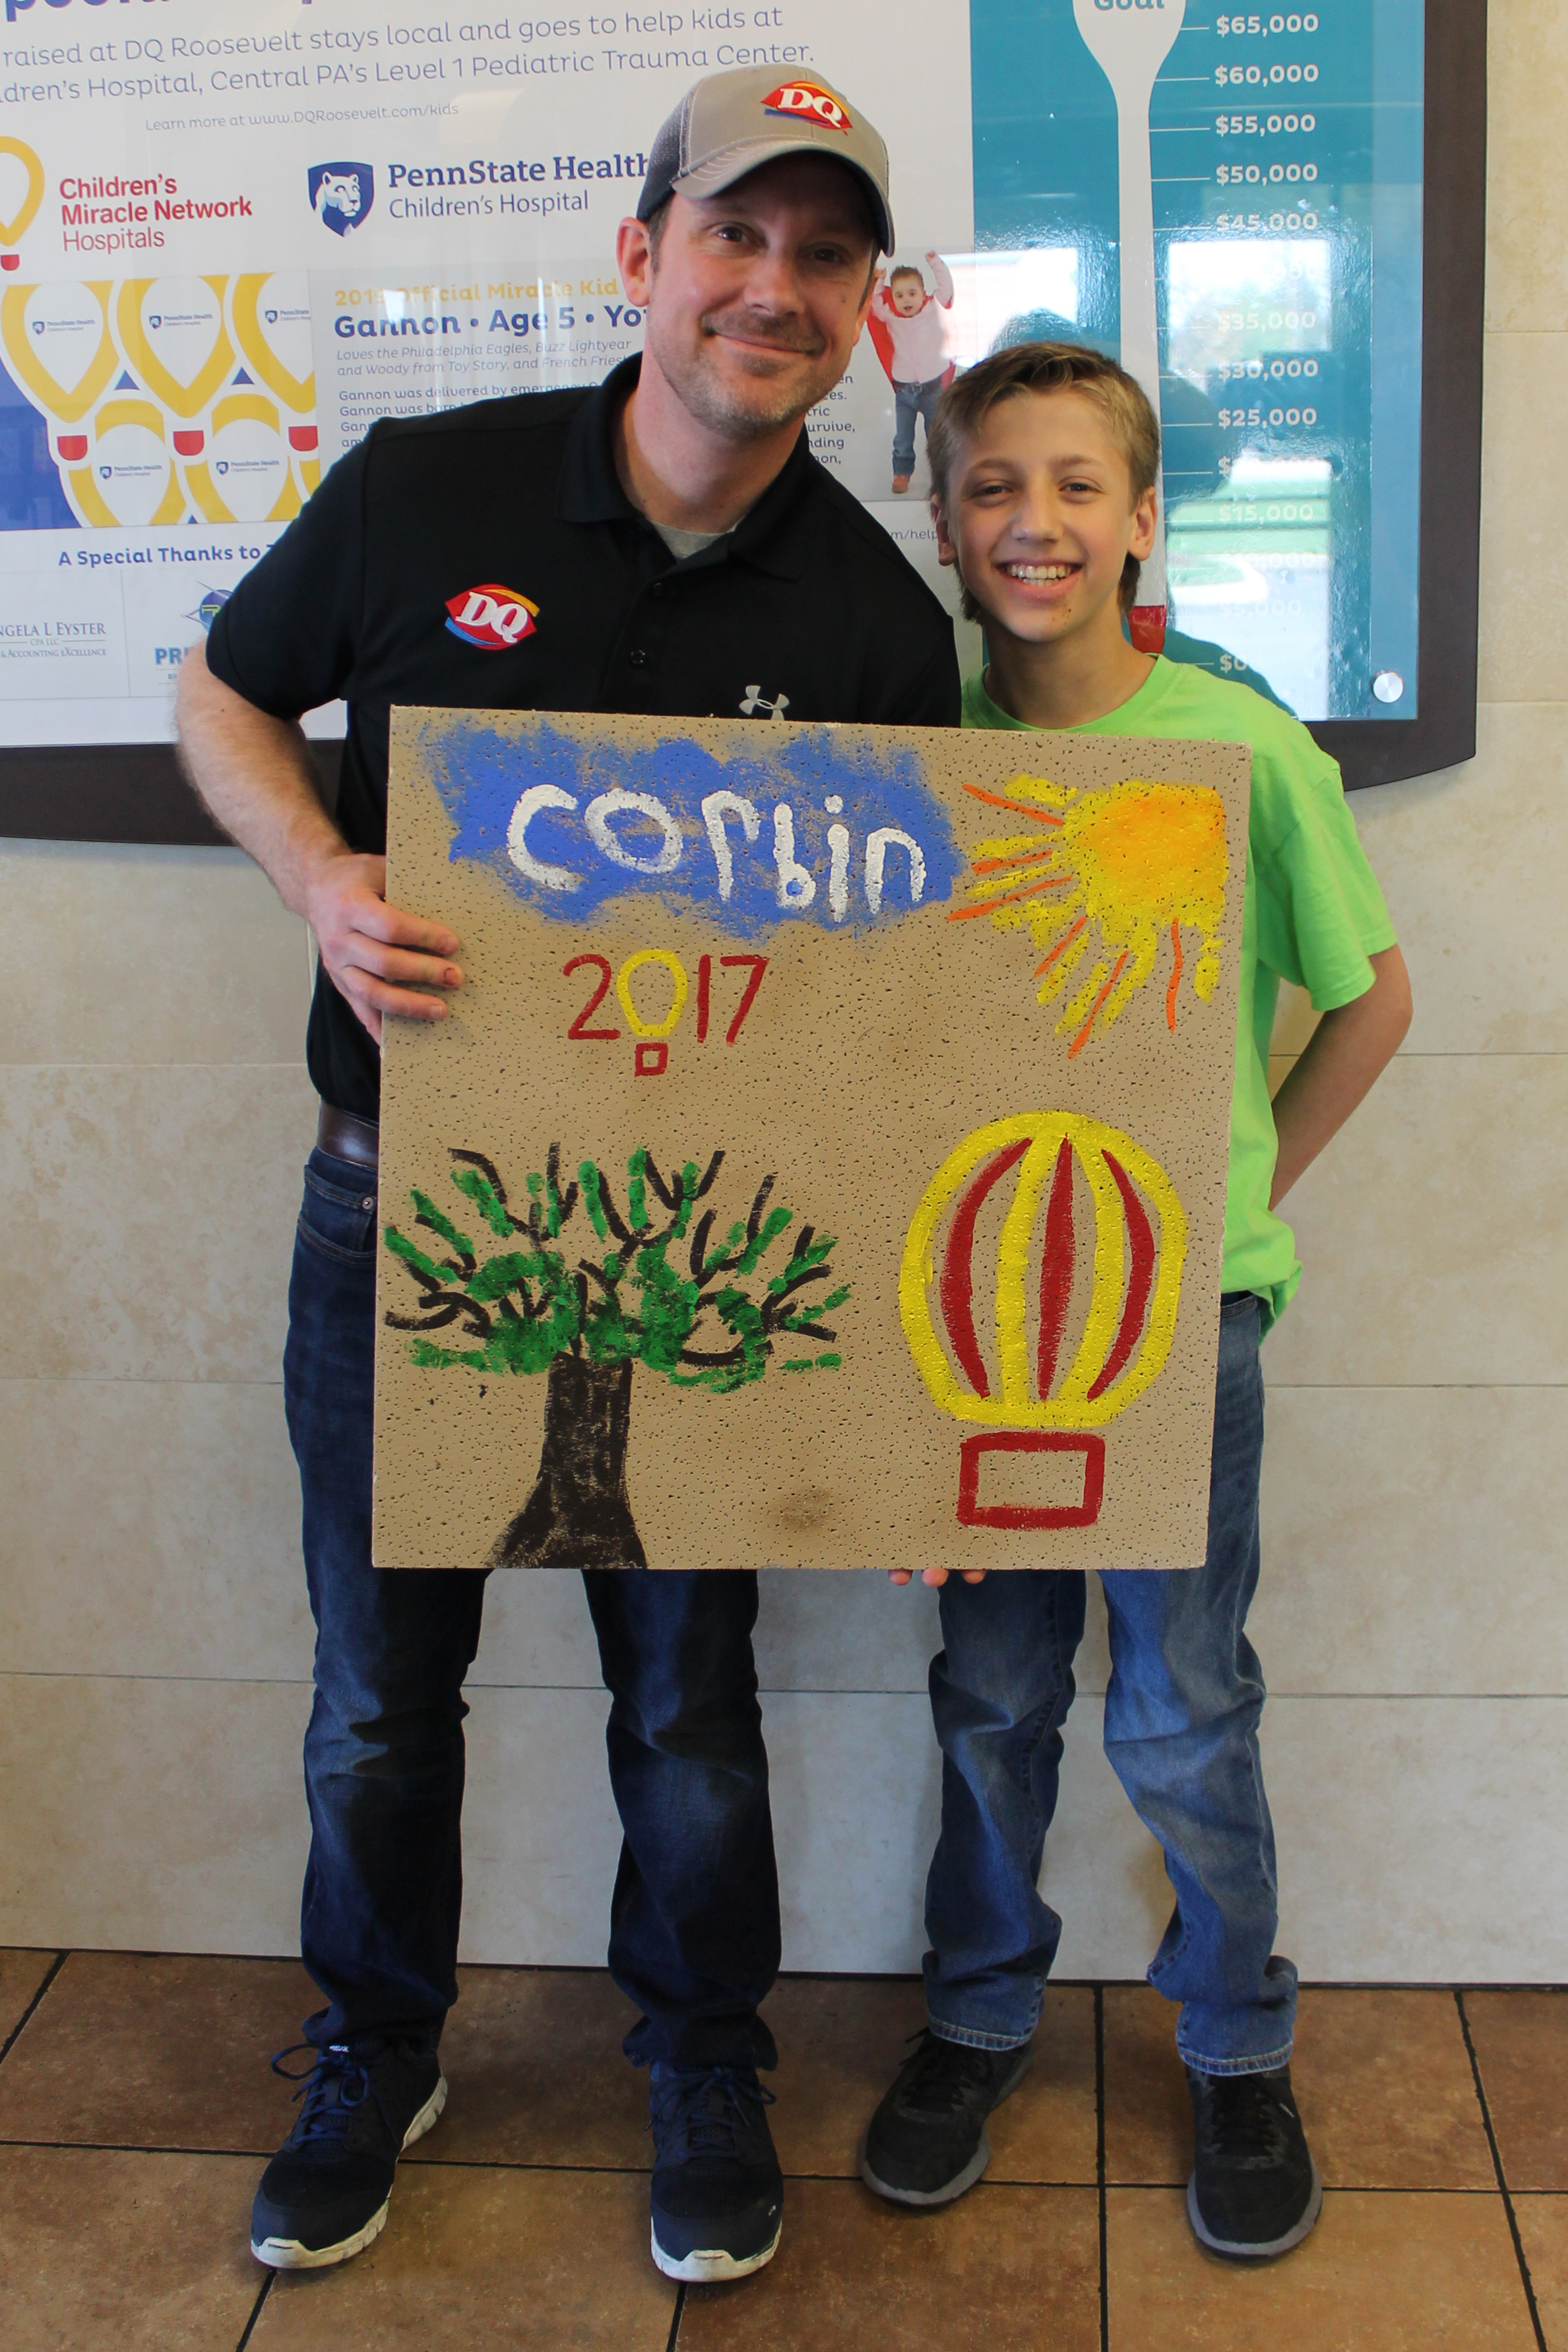 Corbin with John Miller from DQ. Corbin is a fighter, beating all odds as a baby, and now continuing to grow into an amazing man!